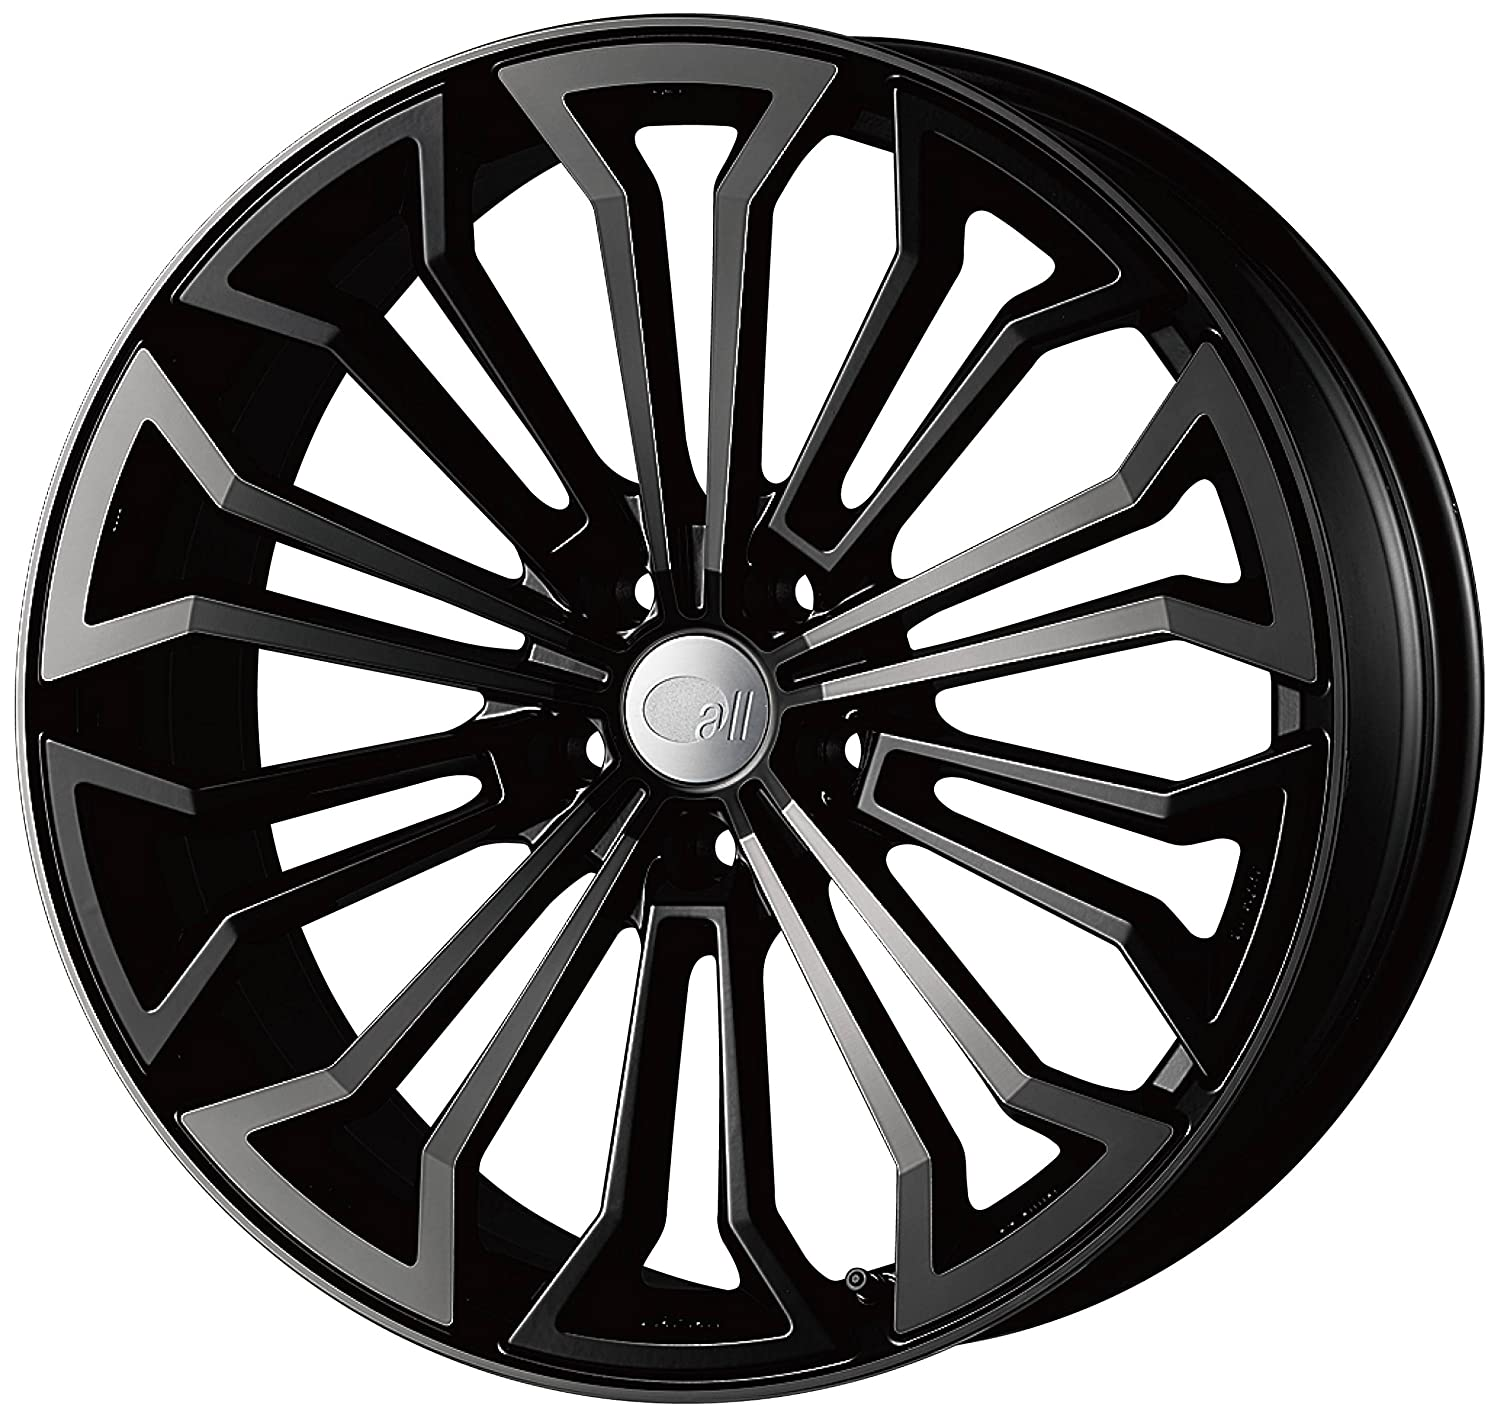 エンケイ アルミホイール all eight 18 x 8.0J +45 5H 114.3 Black Clear AL8-880-45-5H-B/B B06W54SY9B